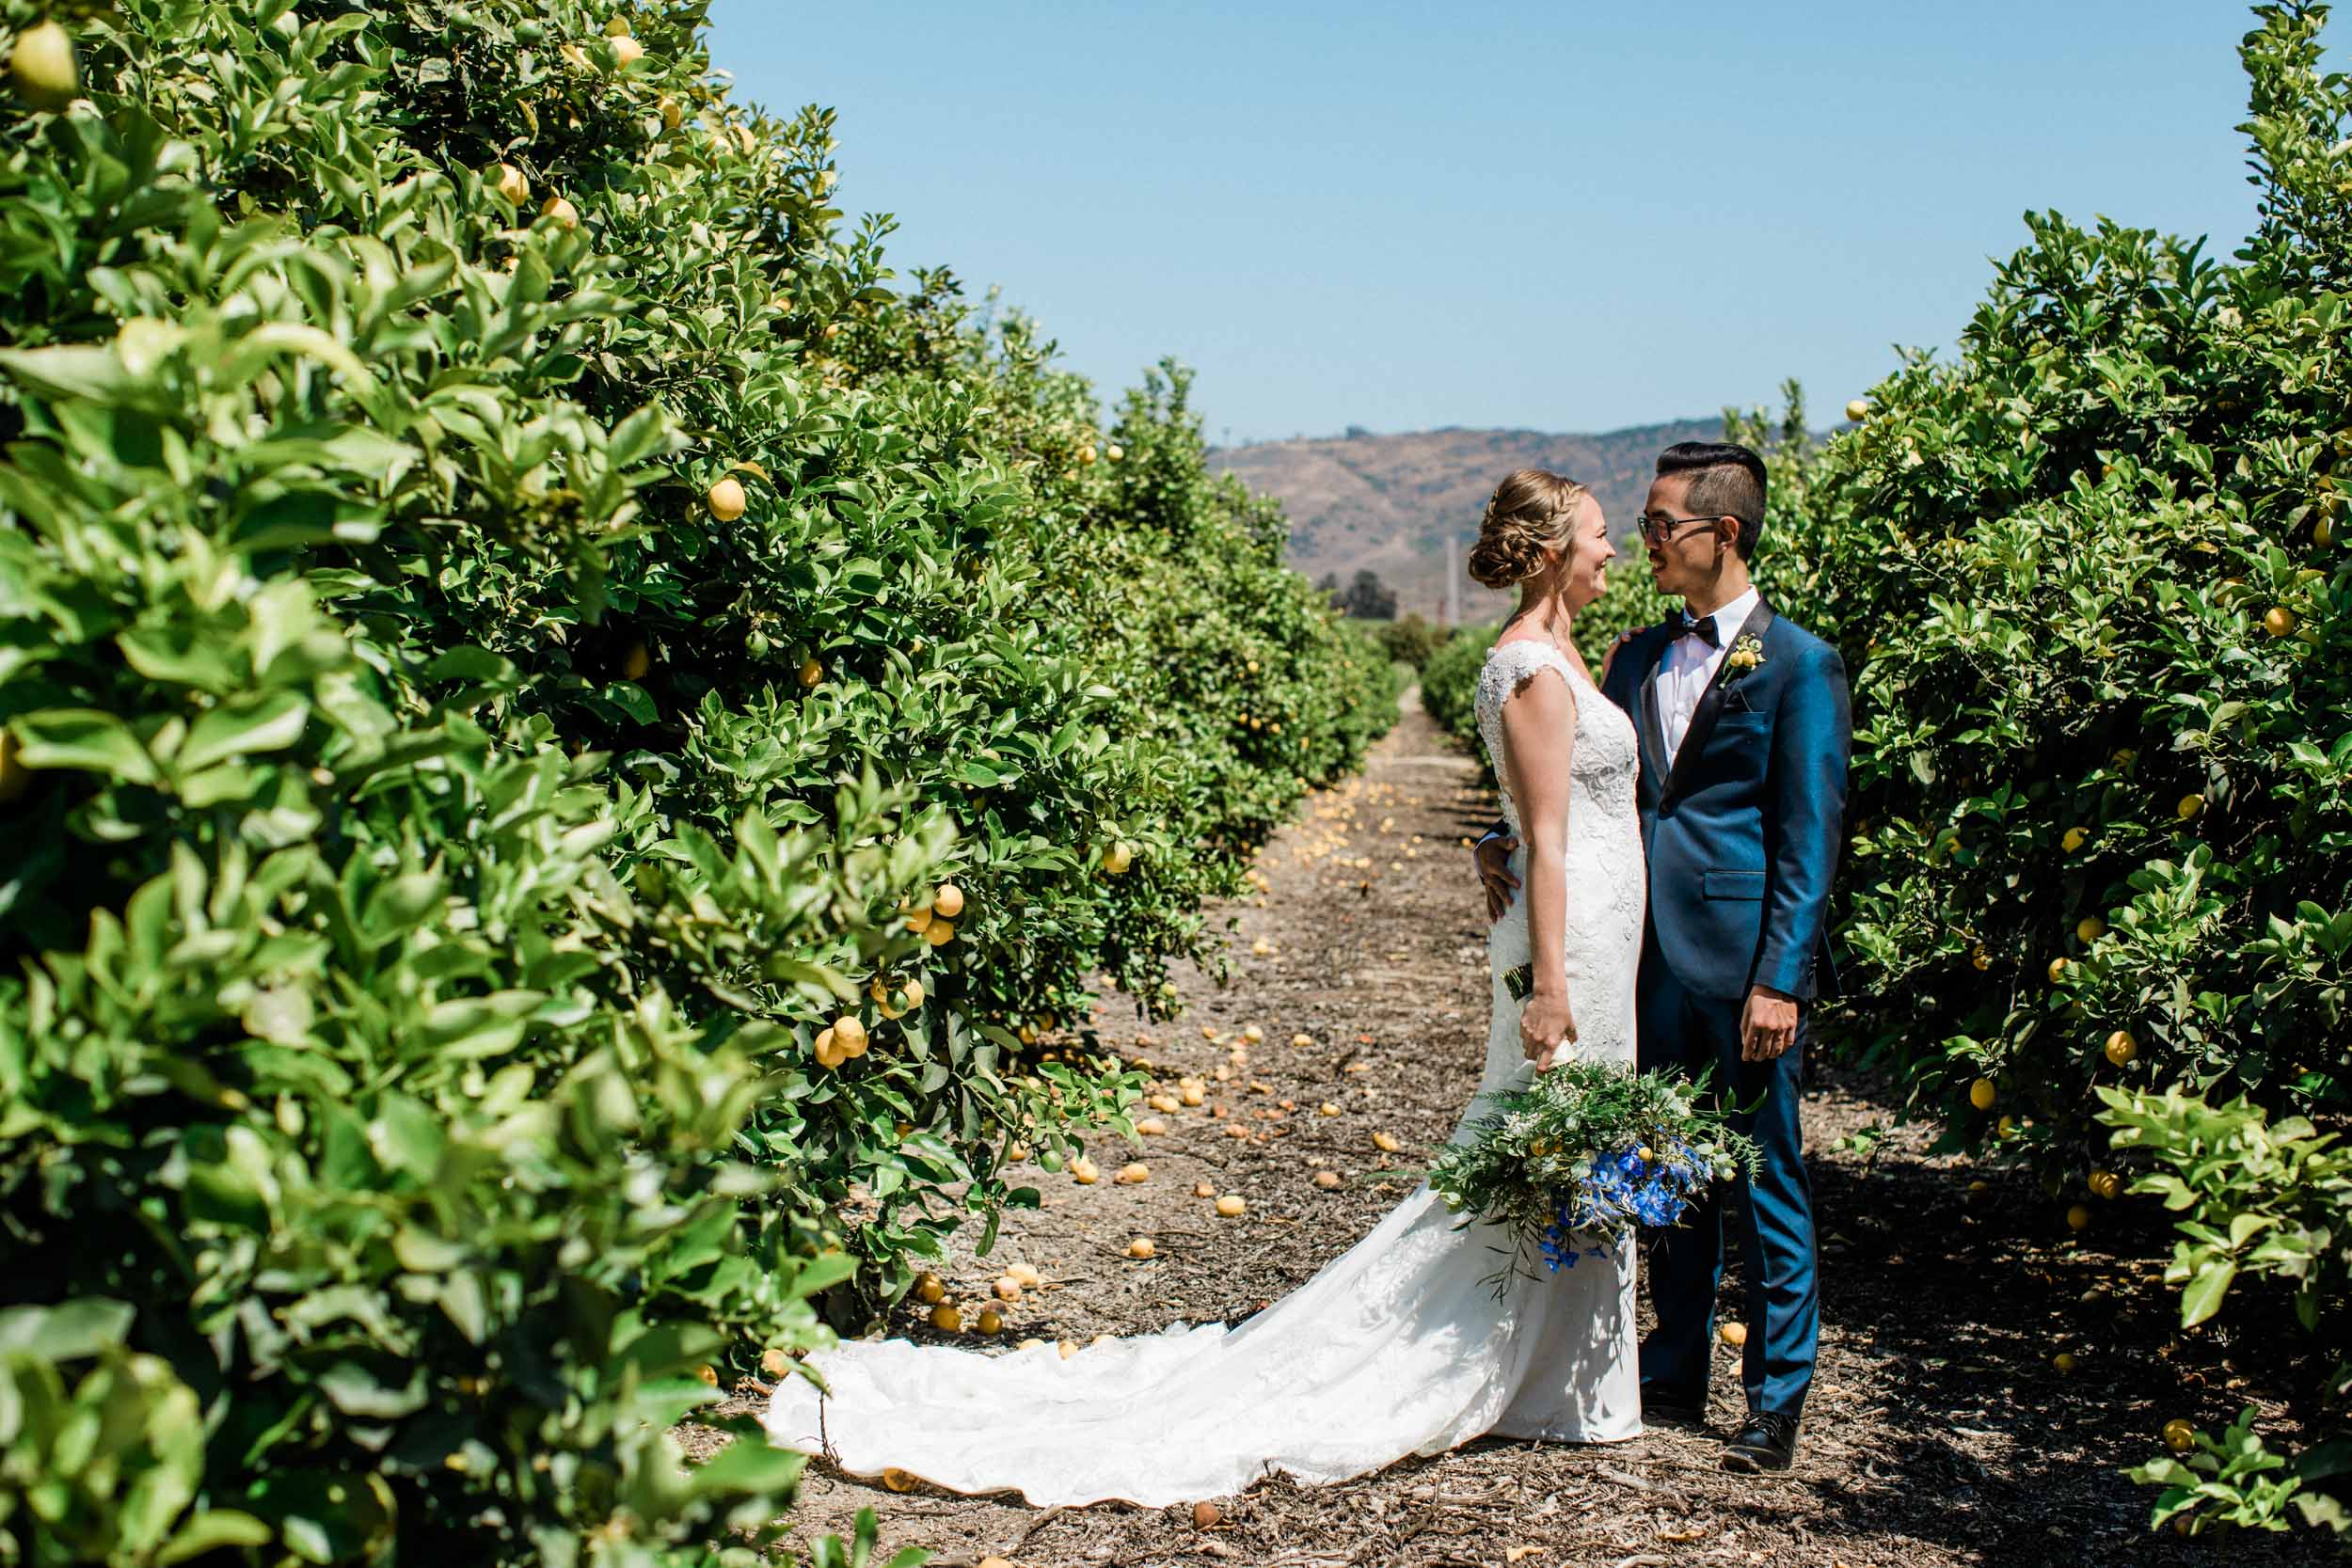 BKM-Photography-Gerry-Ranch-Southern-California-Wedding-0044.jpg